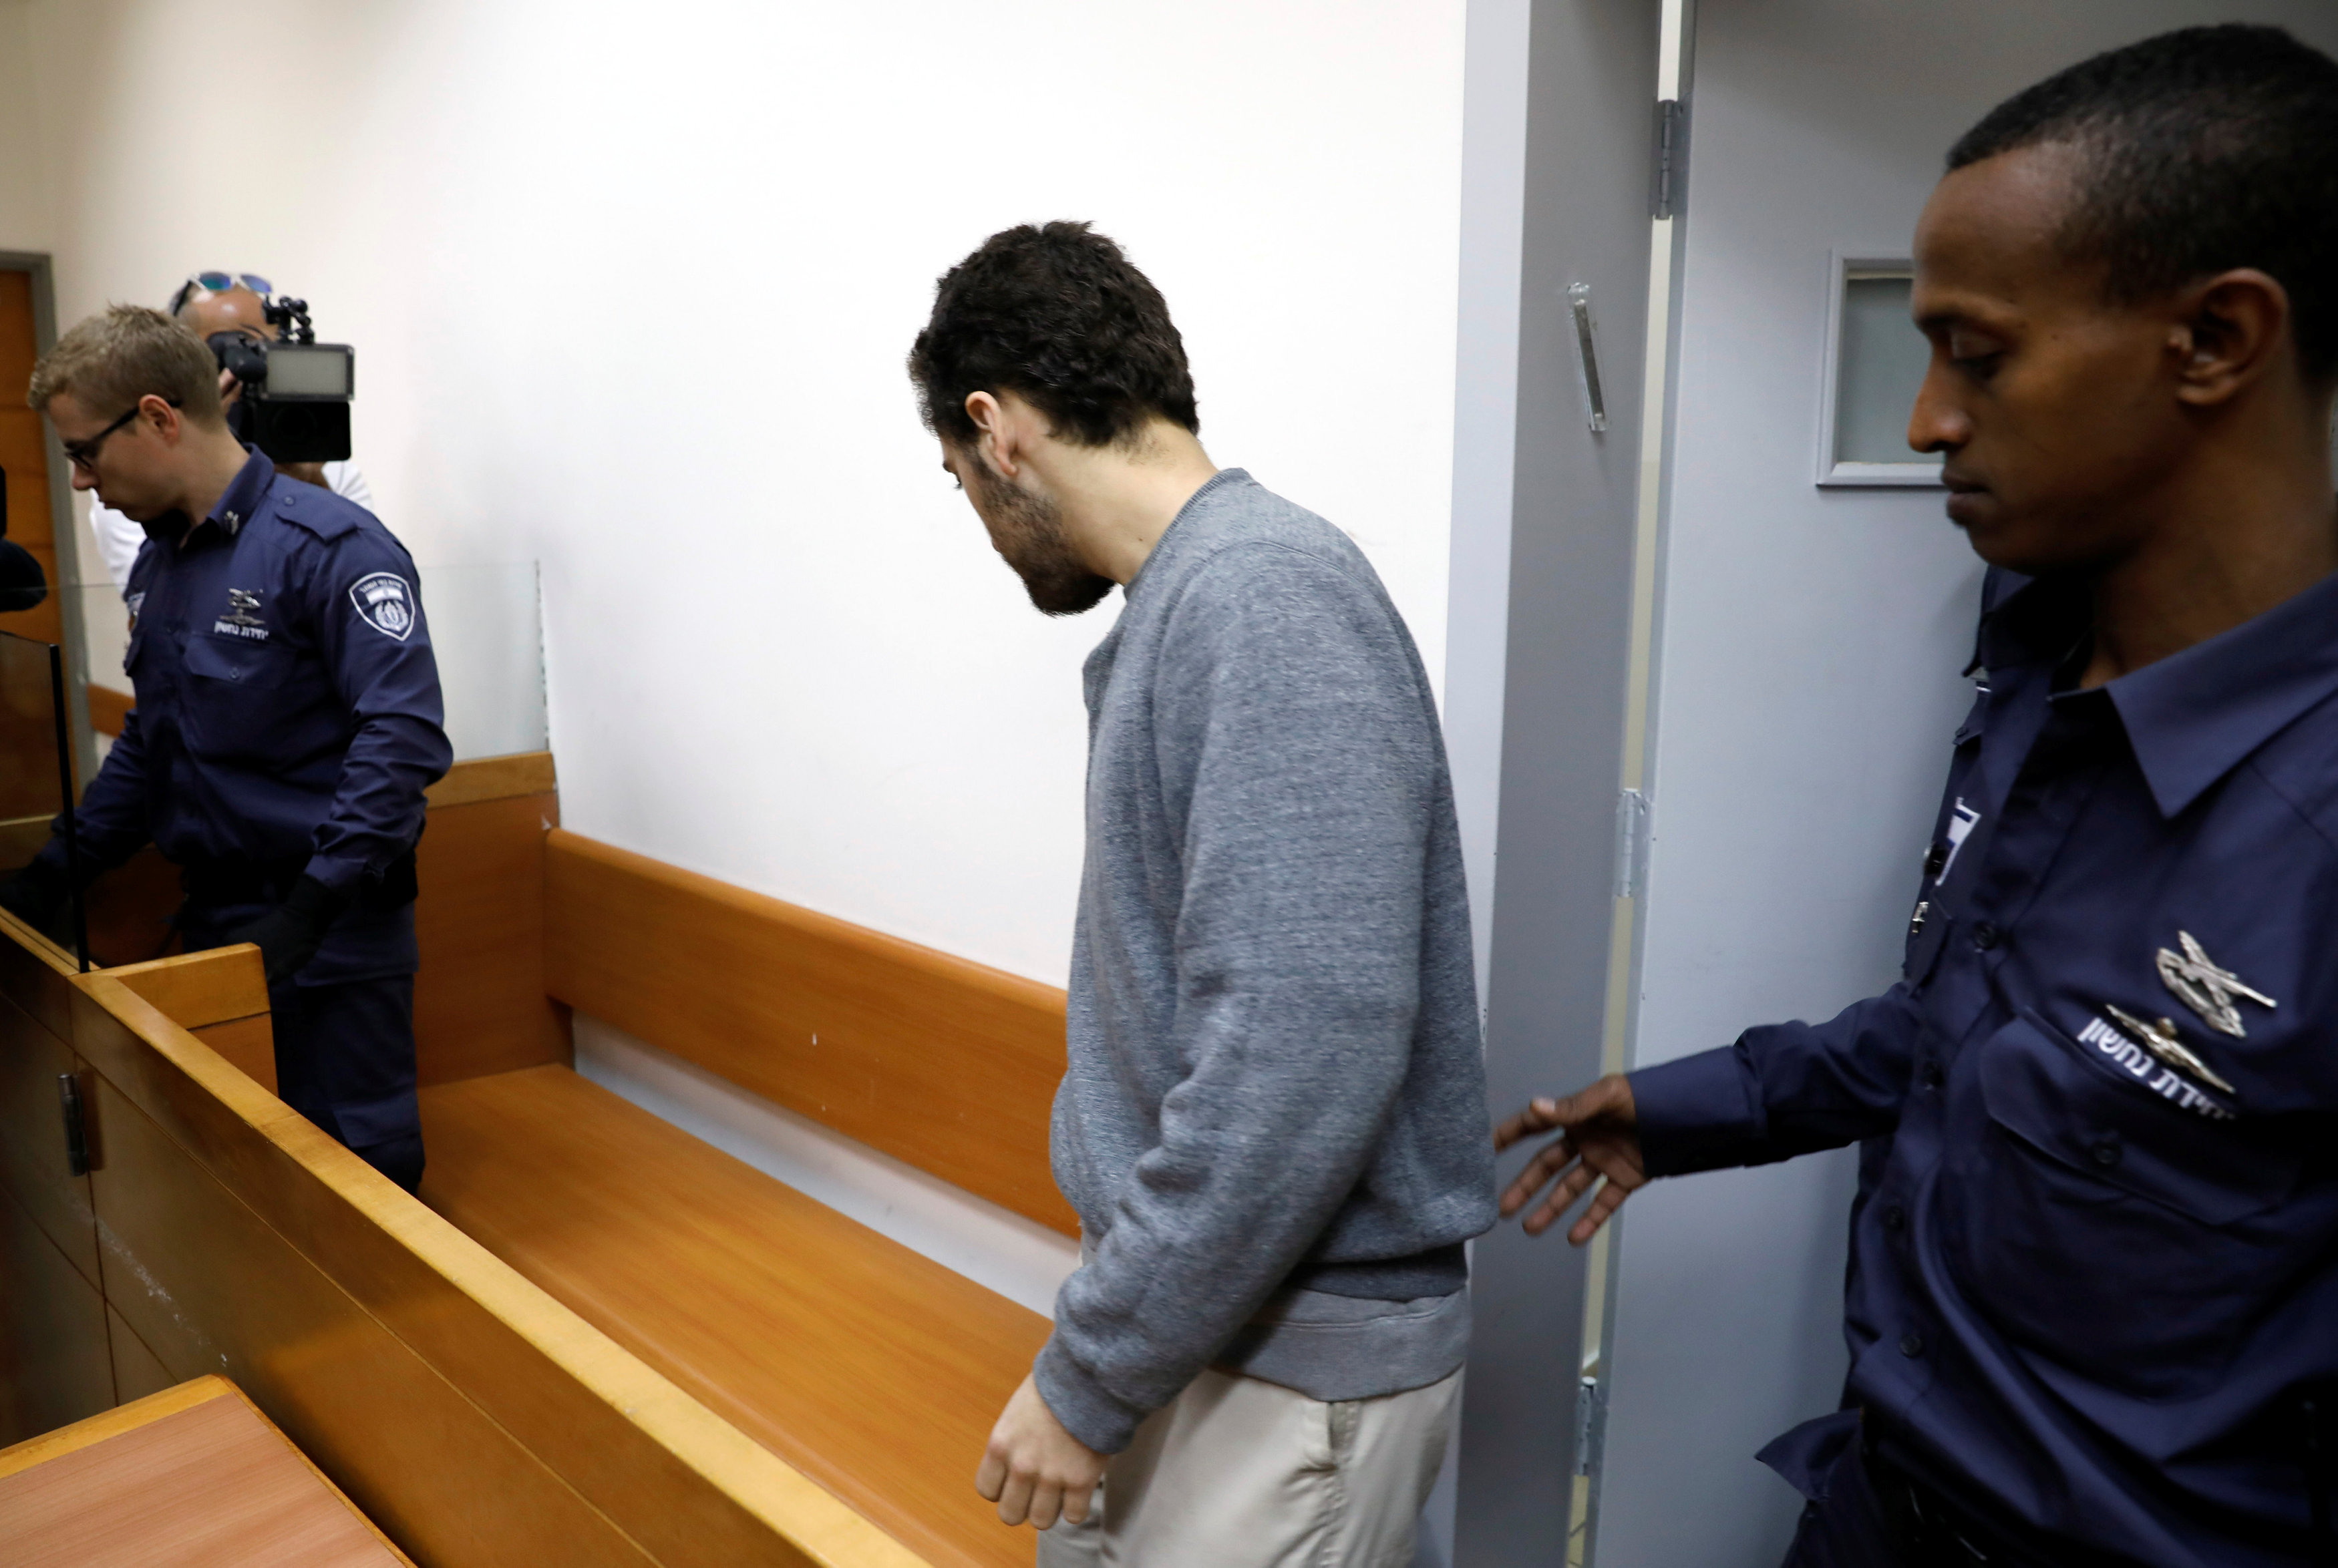 An U.S.-Israeli teen, who was arrested in Israel on suspicion of making bomb threats against Jewish community centres in the United States, Australia and New Zealand, arrives before the start of a remand hearing at Magistrate's Court in Rishon Lezion, Israel April 20, 2017. REUTERS/ Amir Cohen